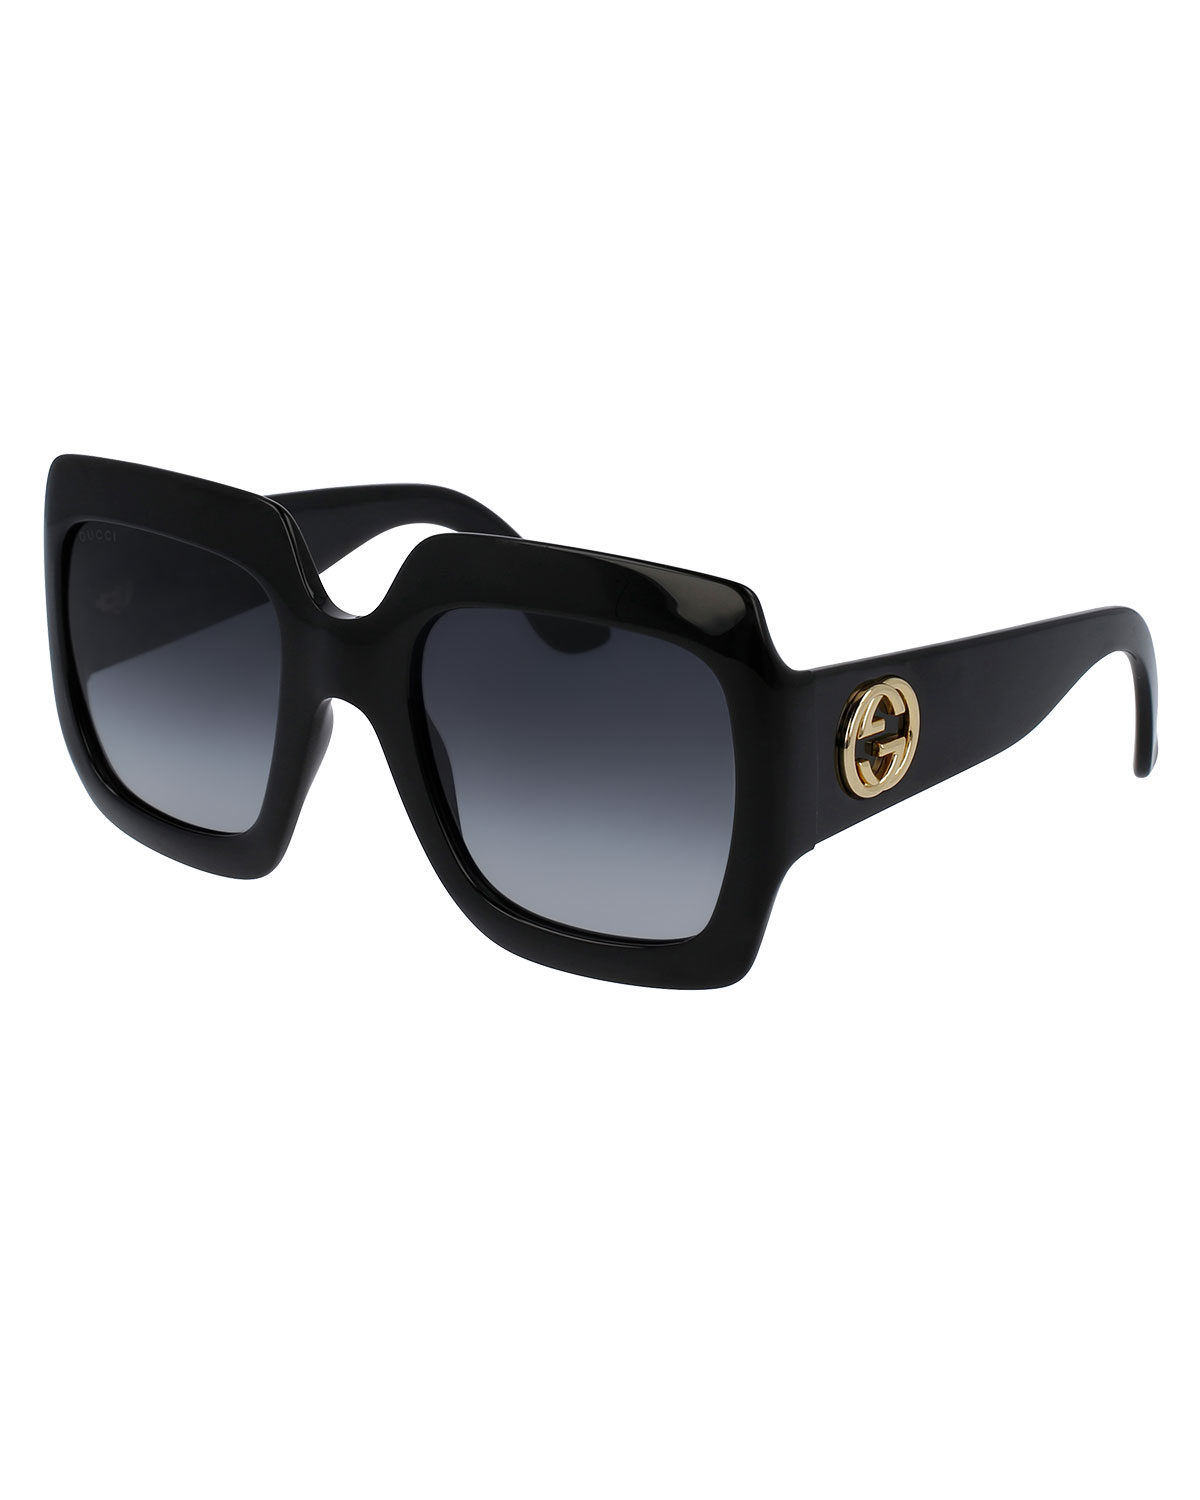 a6853153fc5 Gucci Oversized Square Sunglasses